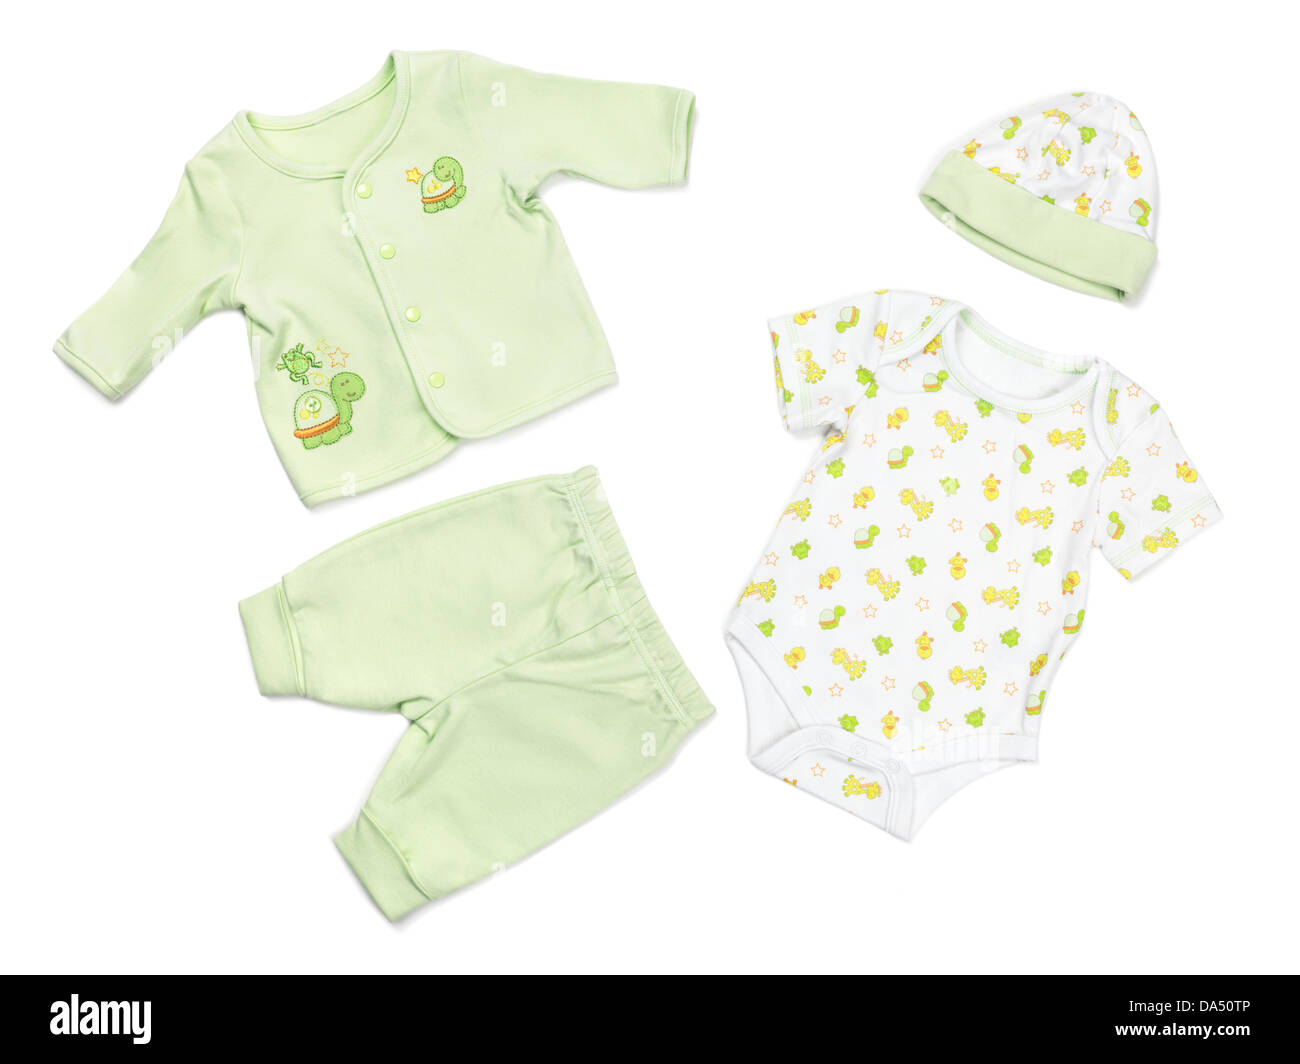 Green organic cotton baby pajama bodysuit and a hat set isolated on white background - Stock Image